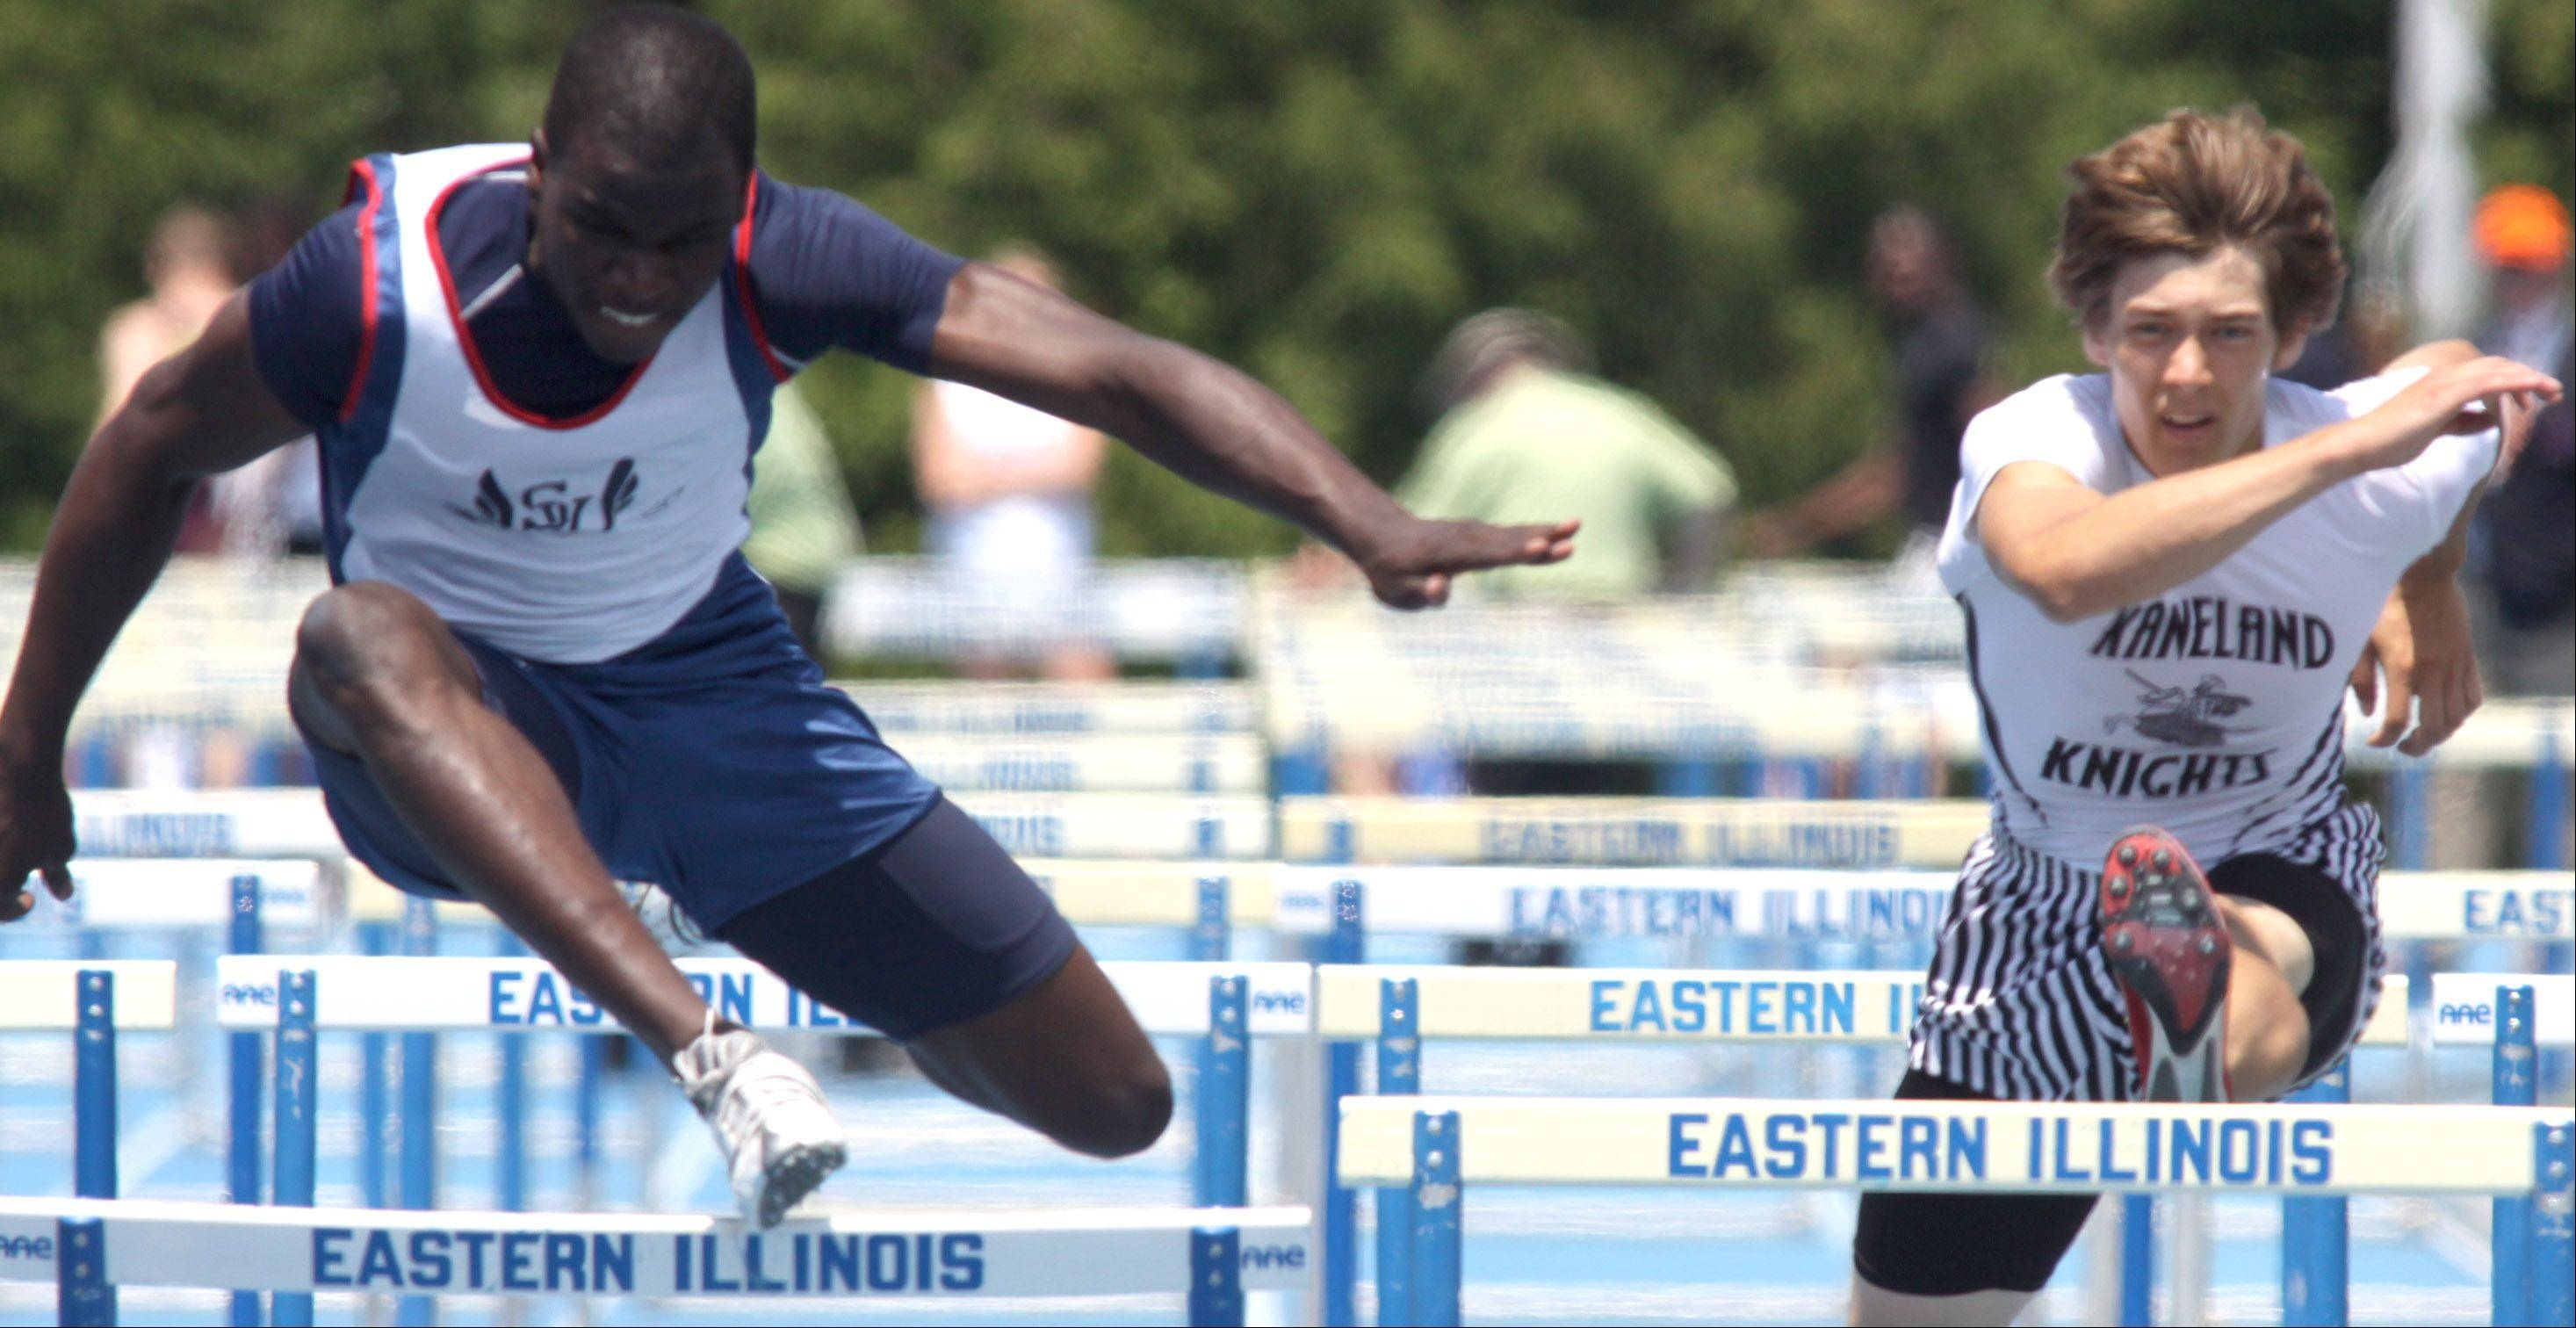 St. Viator's Justin Johnson, left, competes in the Class 2A 110-meter high hurdles during state track finals at O'Brien Field in Charleston in May 2010.